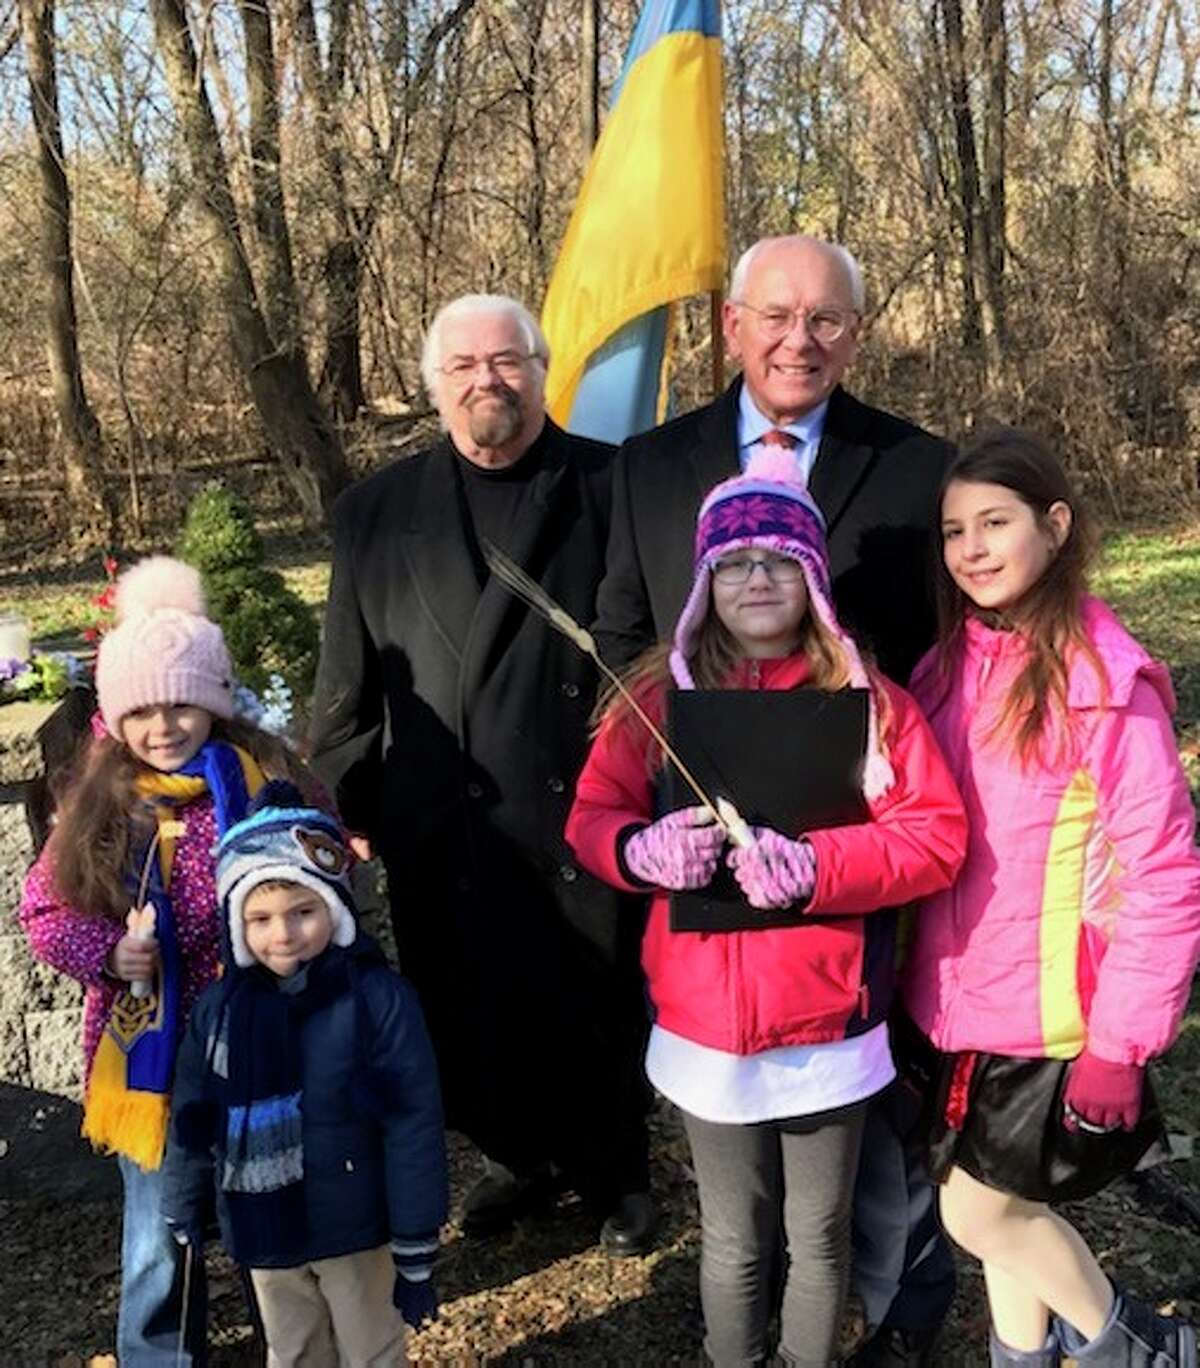 Rep. Paul Tonko joins those remembering the victims of the Holodomor on Saturday, Nov. 16, 2019.